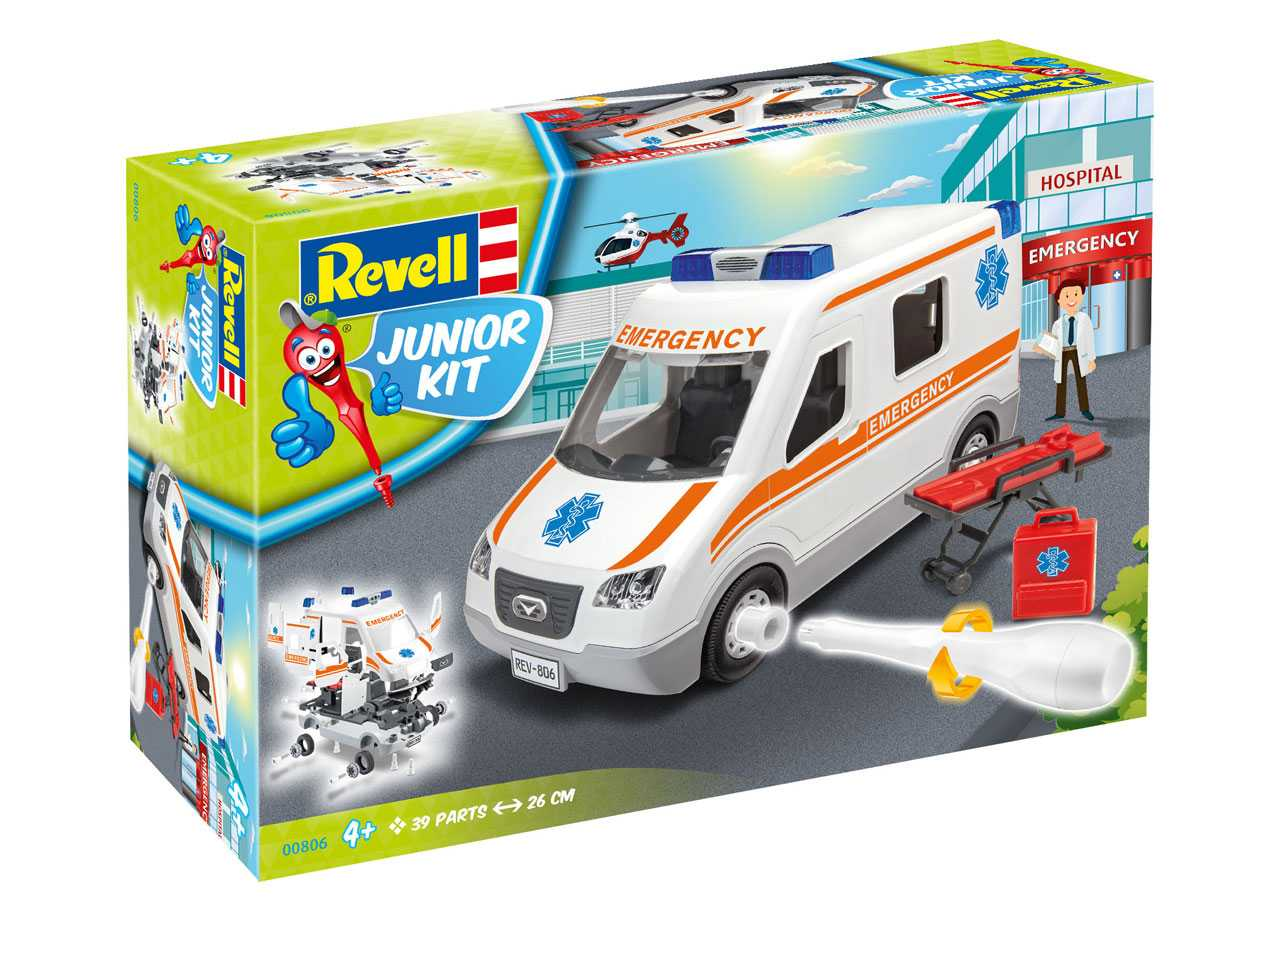 Auto Junior Kit sanitka - Revell 00806